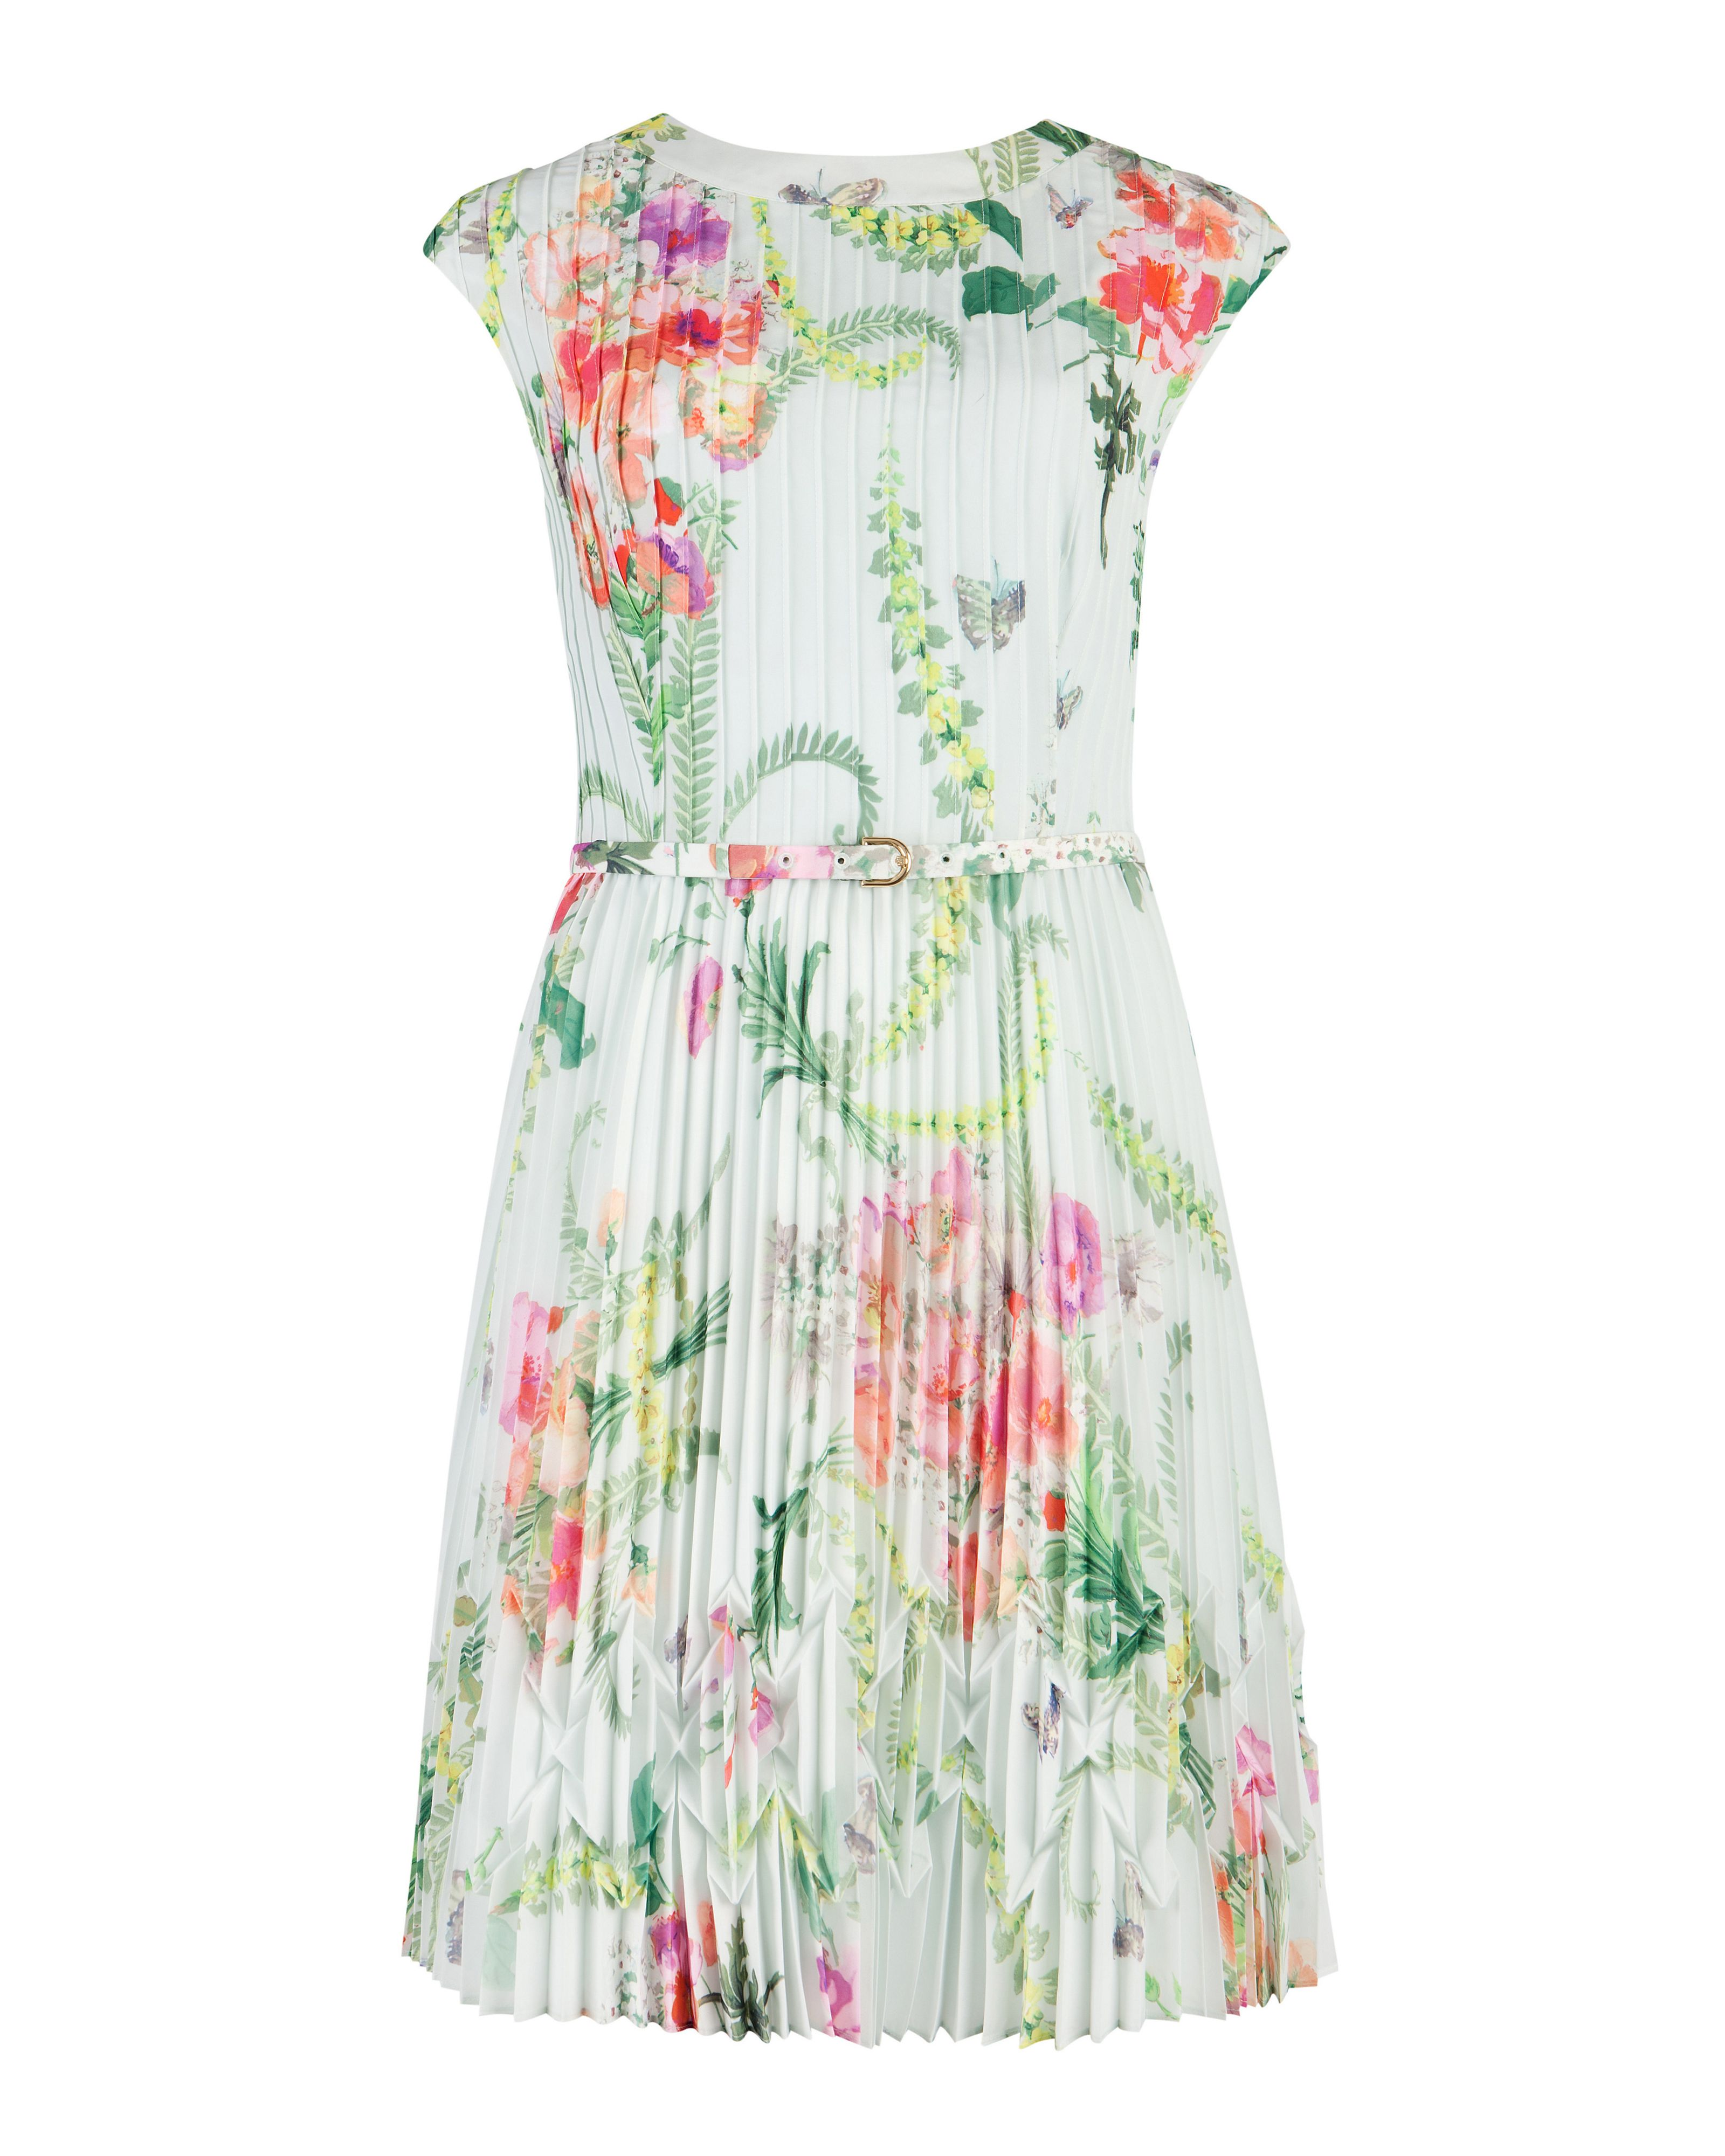 Perlaa wallpaper floral pleated dress